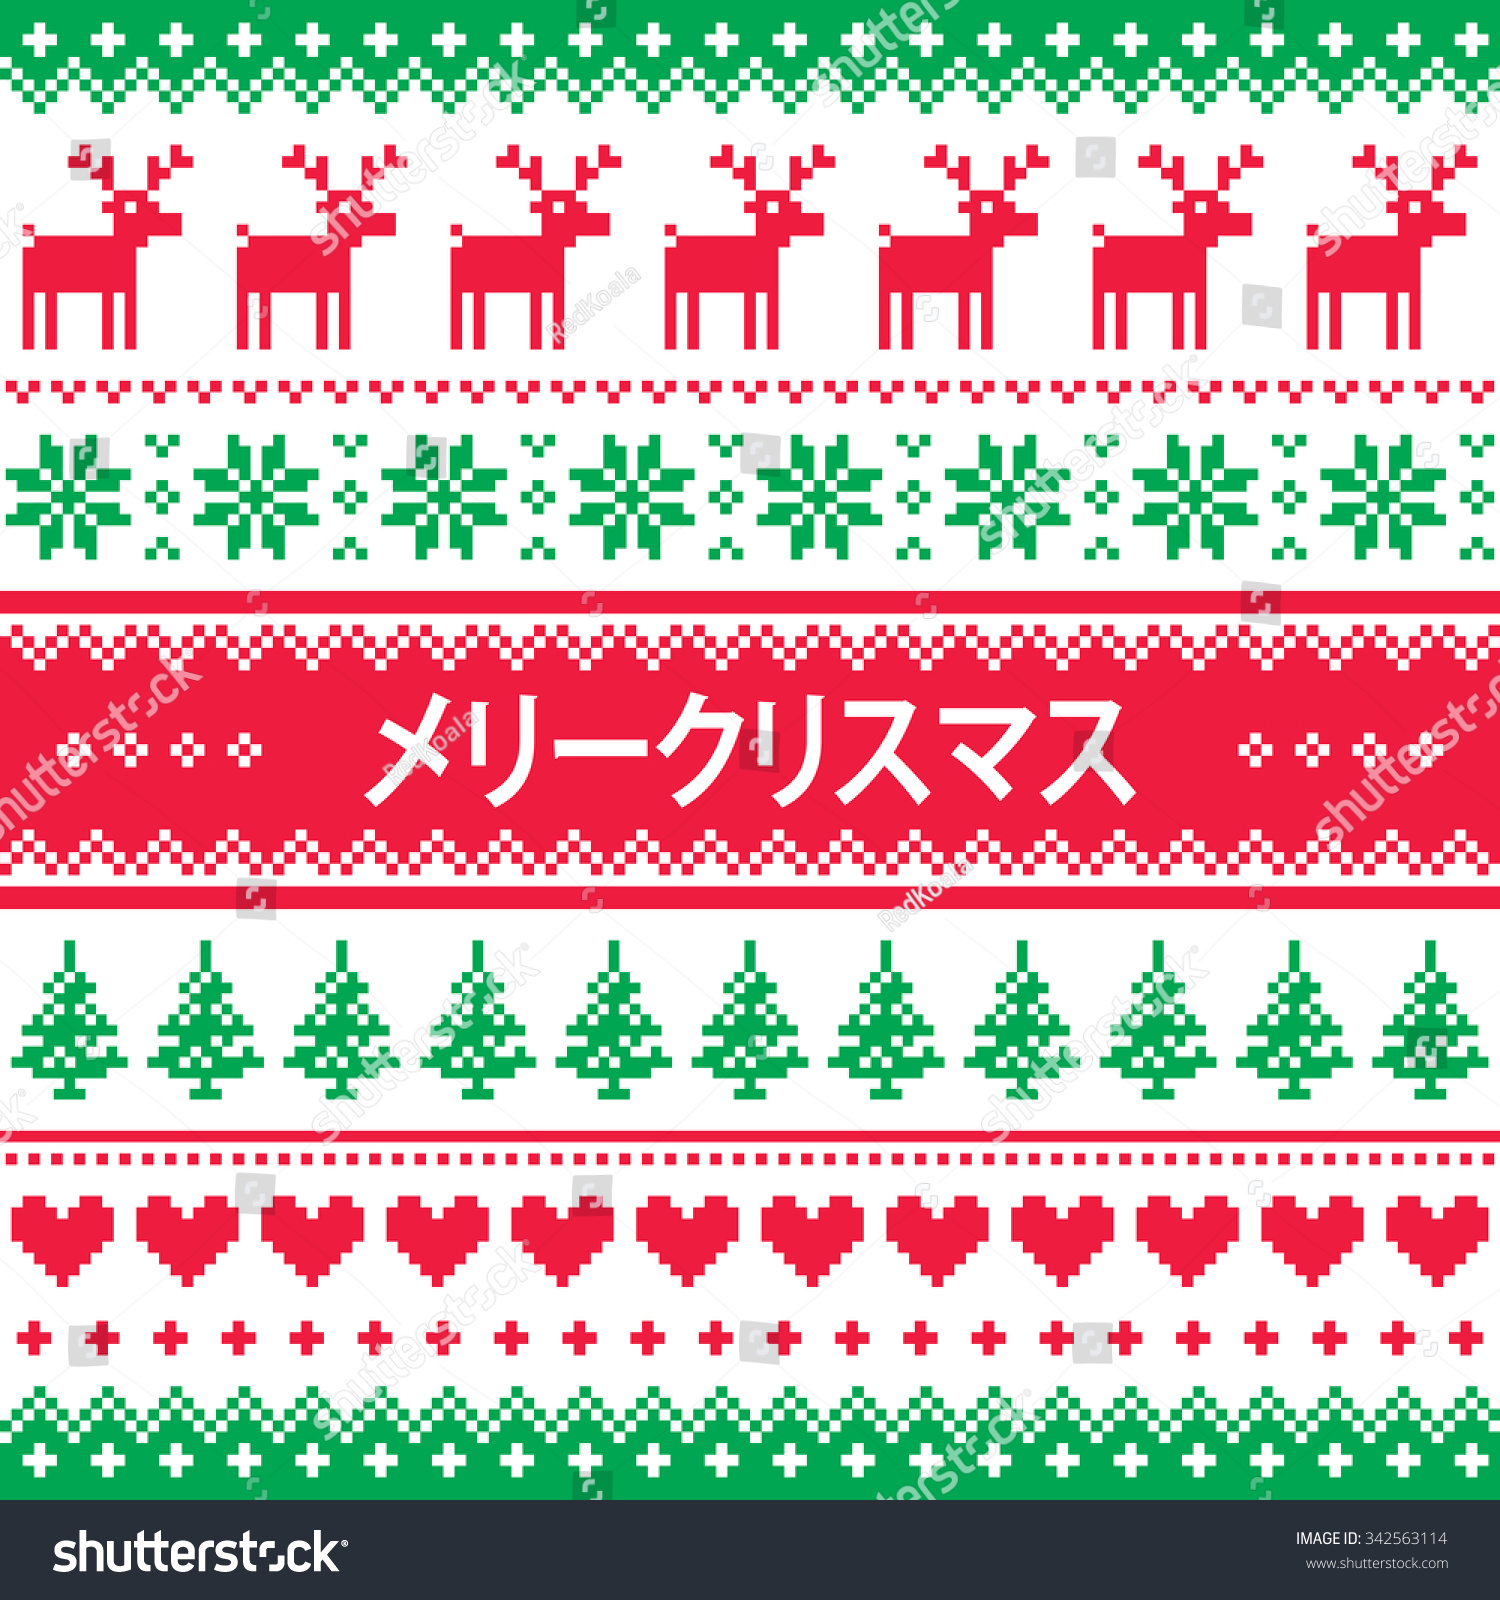 Merry christmas japanese greetings card winter stock vector royalty merry christmas in japanese greetings card with winter pattern merii kurisumasu m4hsunfo